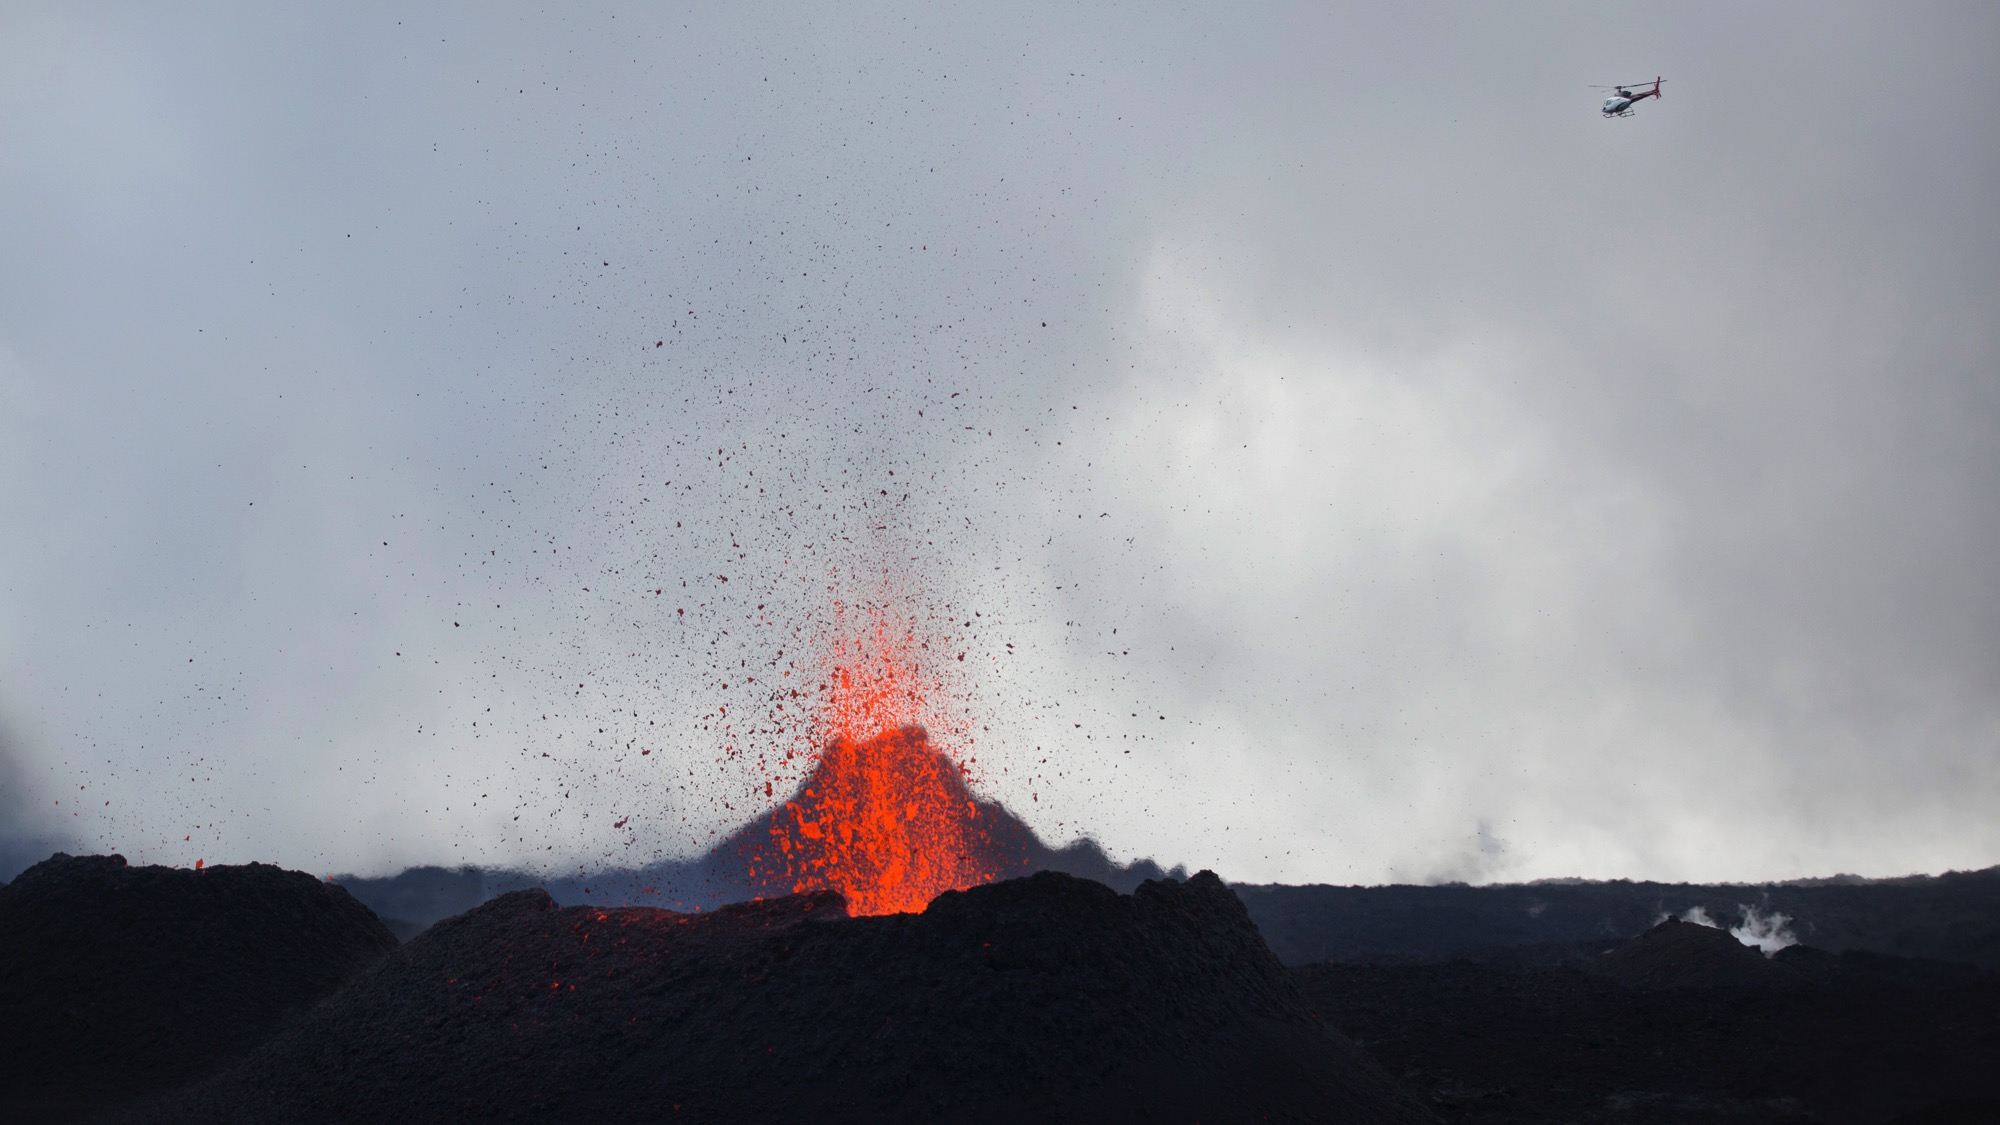 "A helicopter flies over as lava erupts from the Piton de la Fournaise ""Peak of the Furnace"" volcano, on the southeastern corner of the Indian Ocean island of Reunion Saturday, Aug. 1, 2015. Spewing red-hot lava, one of the most active volcanoes in the world is currently erupting on this Indian Ocean island, where the world's attention has been focused since a wing fragment believed to be from the missing Malaysian jet was discovered washed up on a beach. (AP Photo/Ben Curtis)"